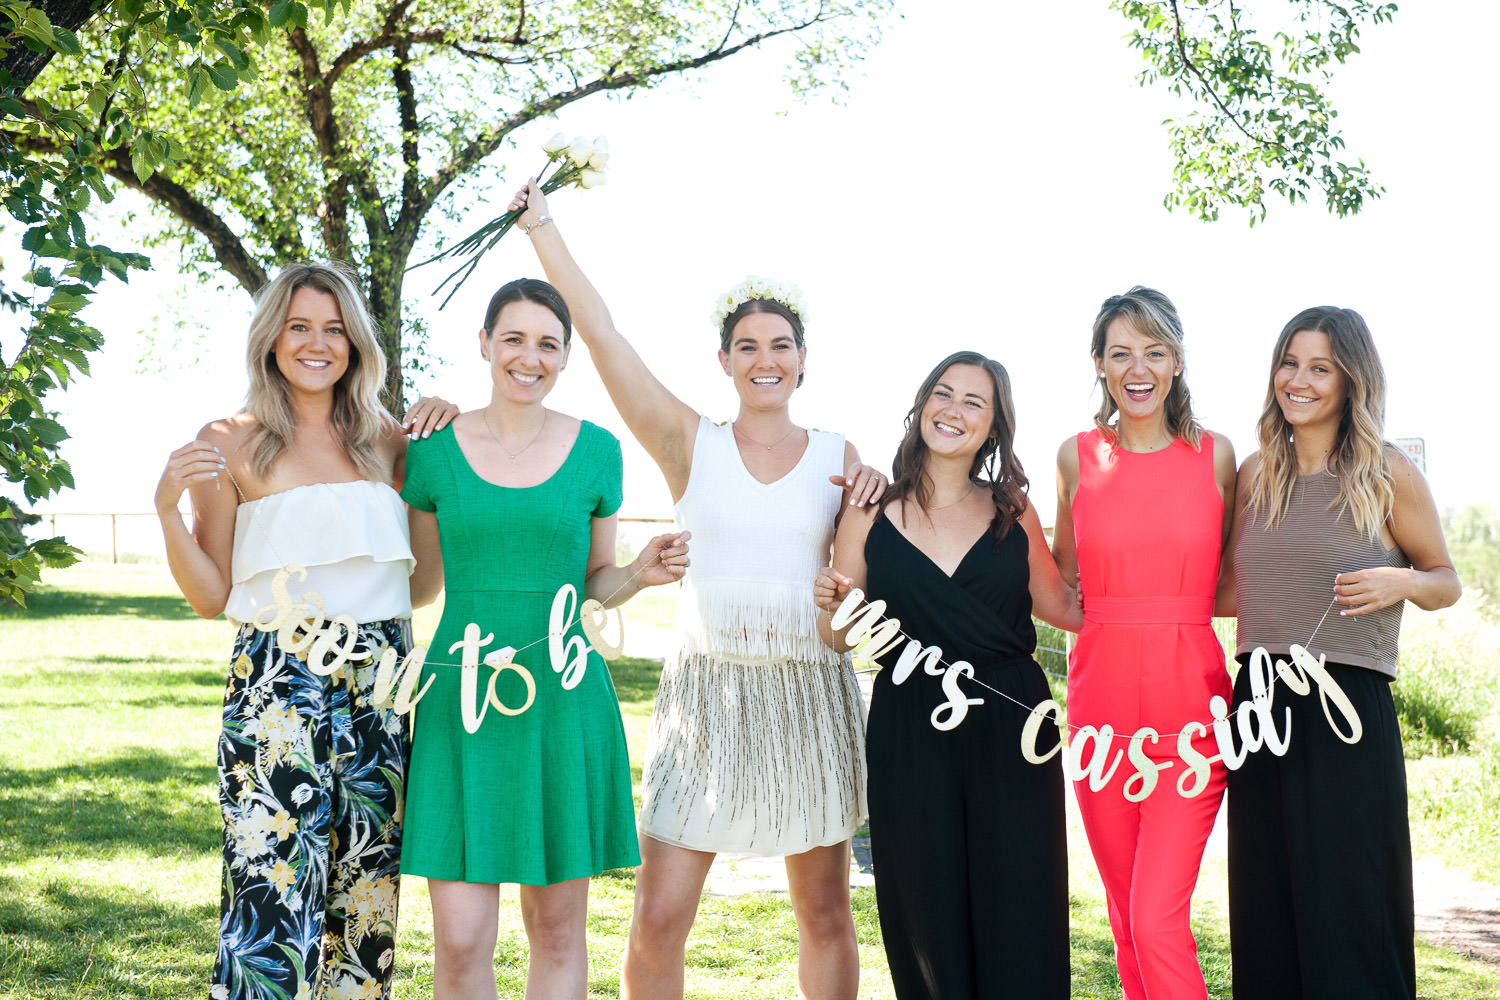 group photos at bride tribe celebration in Calgary captured by Tara Whittaker Photography